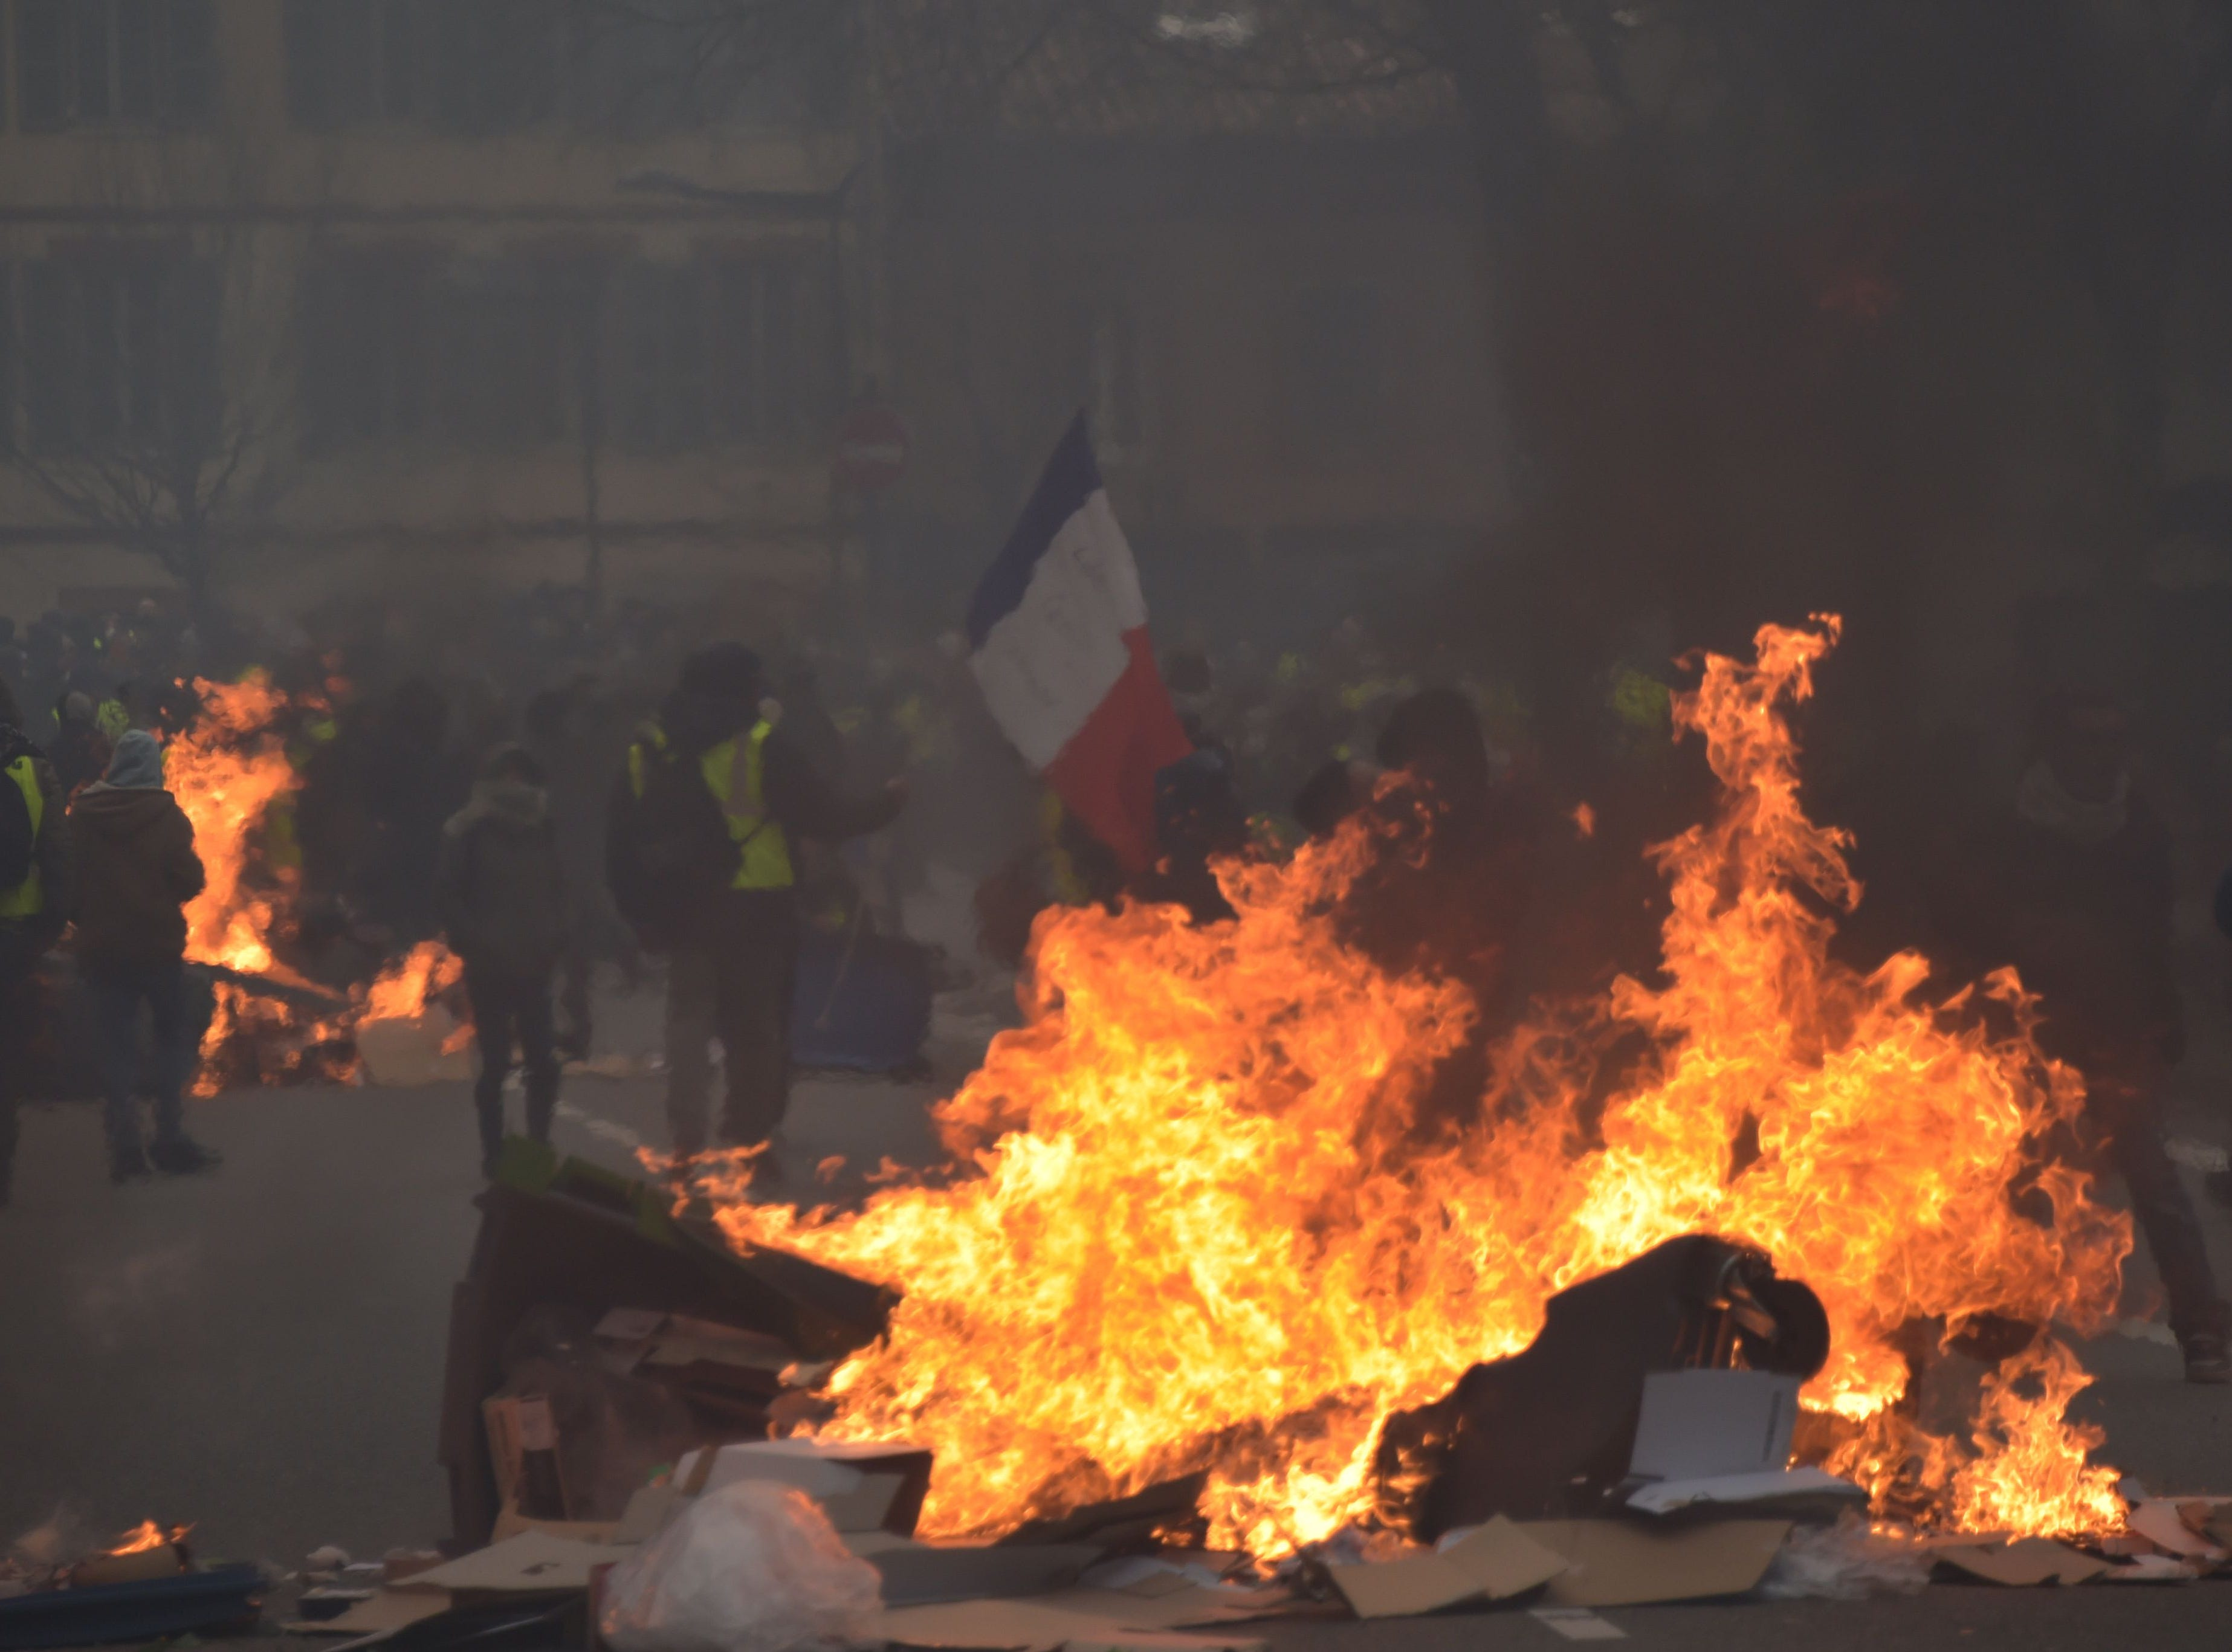 Protestors stand near burning garbage bins during a demonstration called by the yellow vests (gilets jaunes) movement to protest against the rising costs of living they blame on high taxes, on Dec. 29, 2018 in Toulouse, southern France.